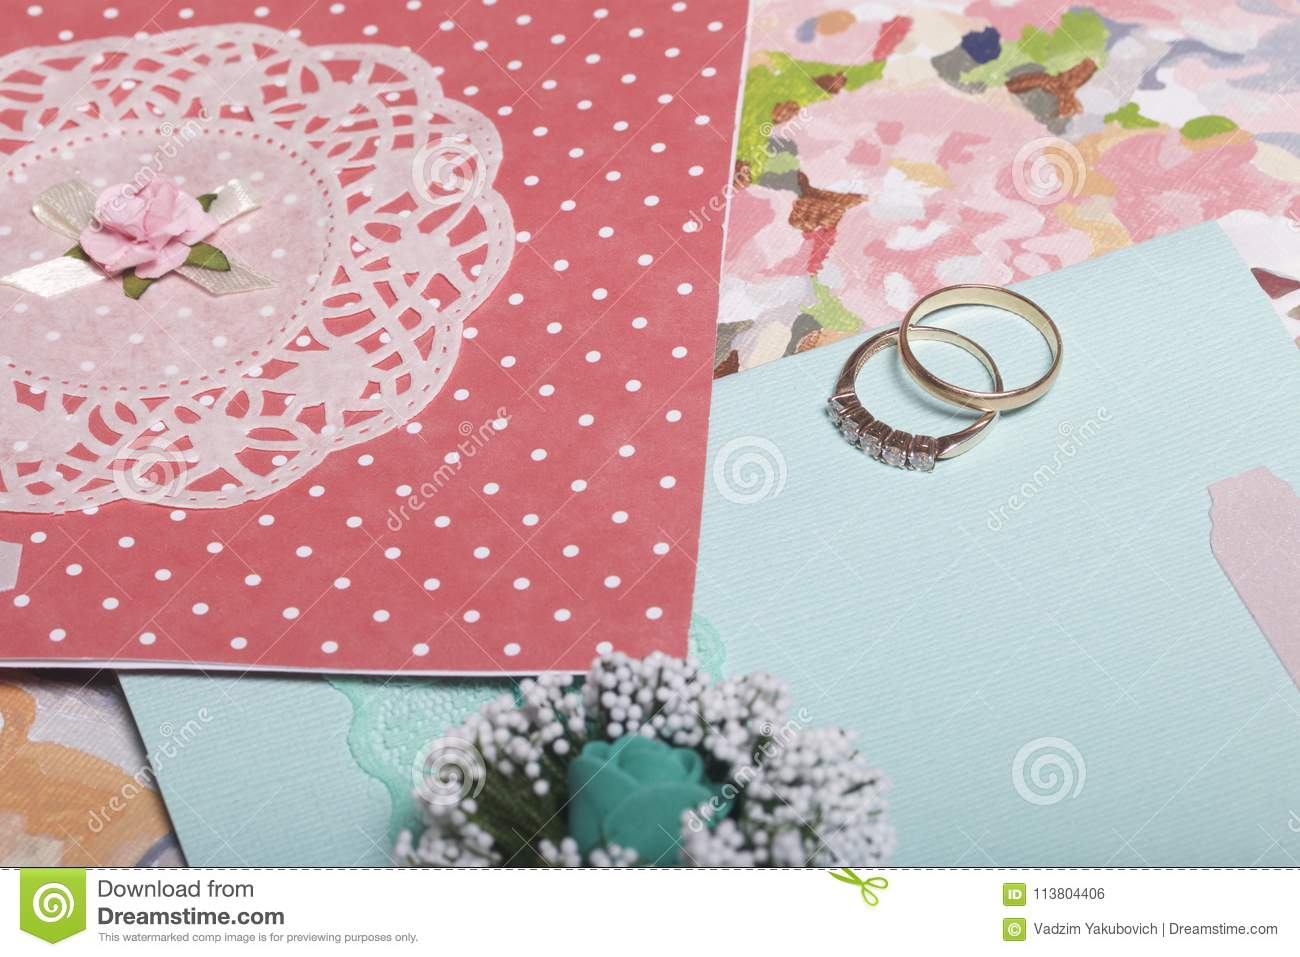 Wedding decor invitation cards and wedding rings lie on the canvas invitation cards and wedding rings lie on the canvas stock photo stopboris Image collections